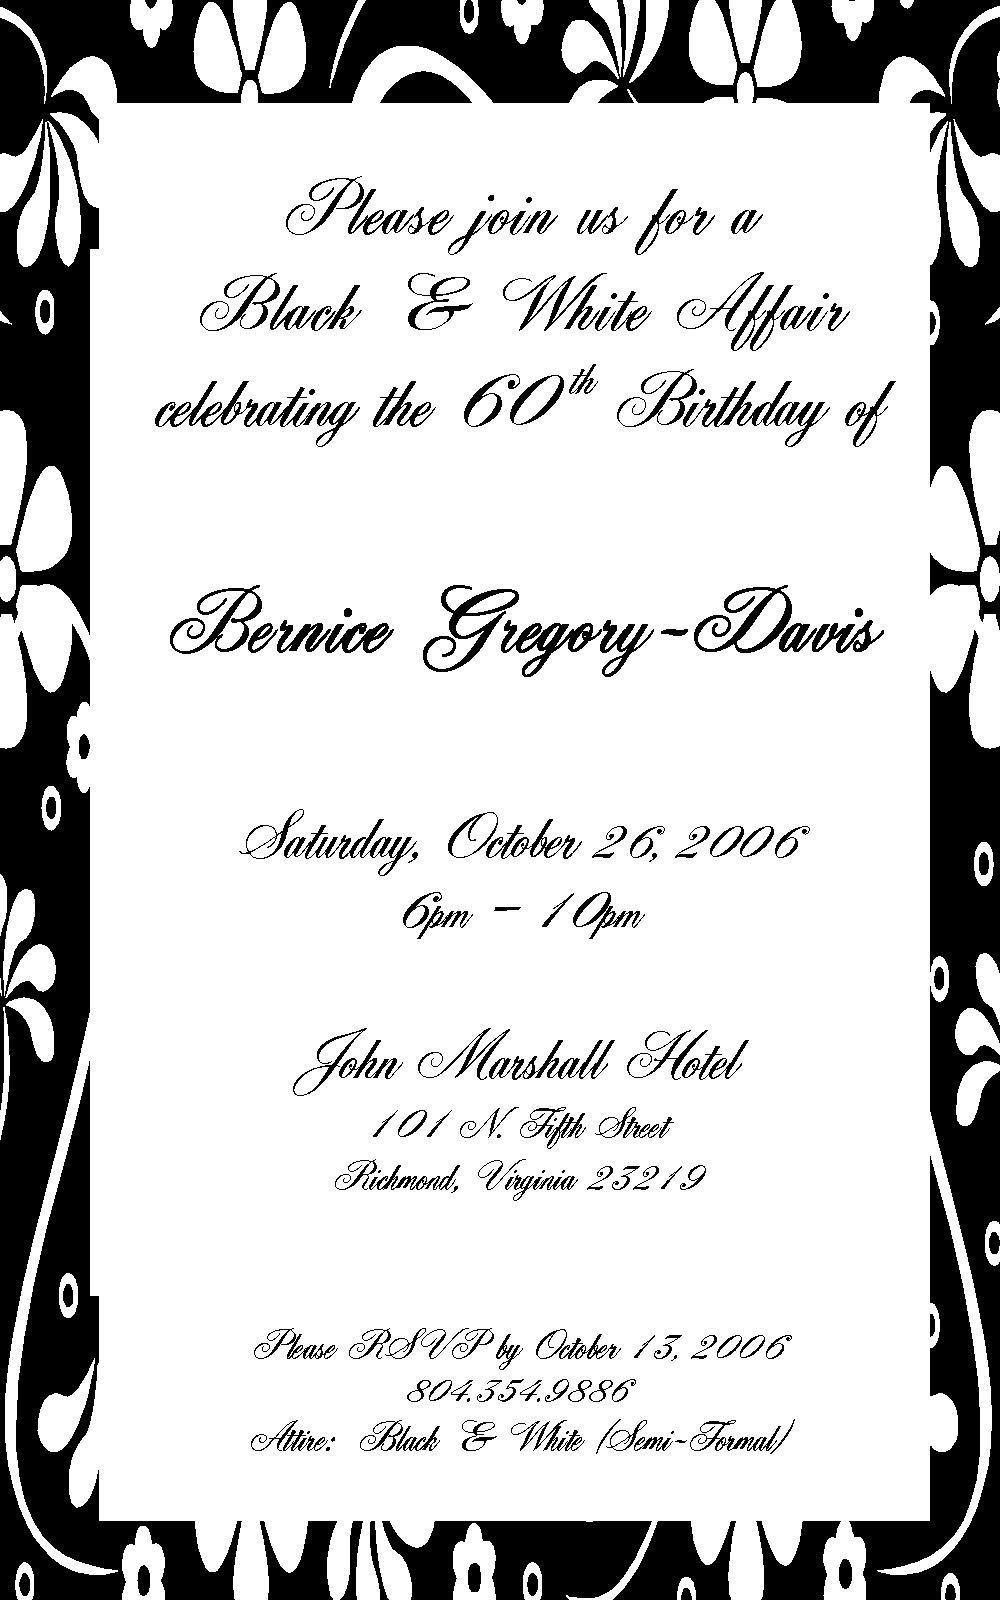 Birthday invitation sample party invitation pinterest dinner birthday invitation sample stopboris Choice Image